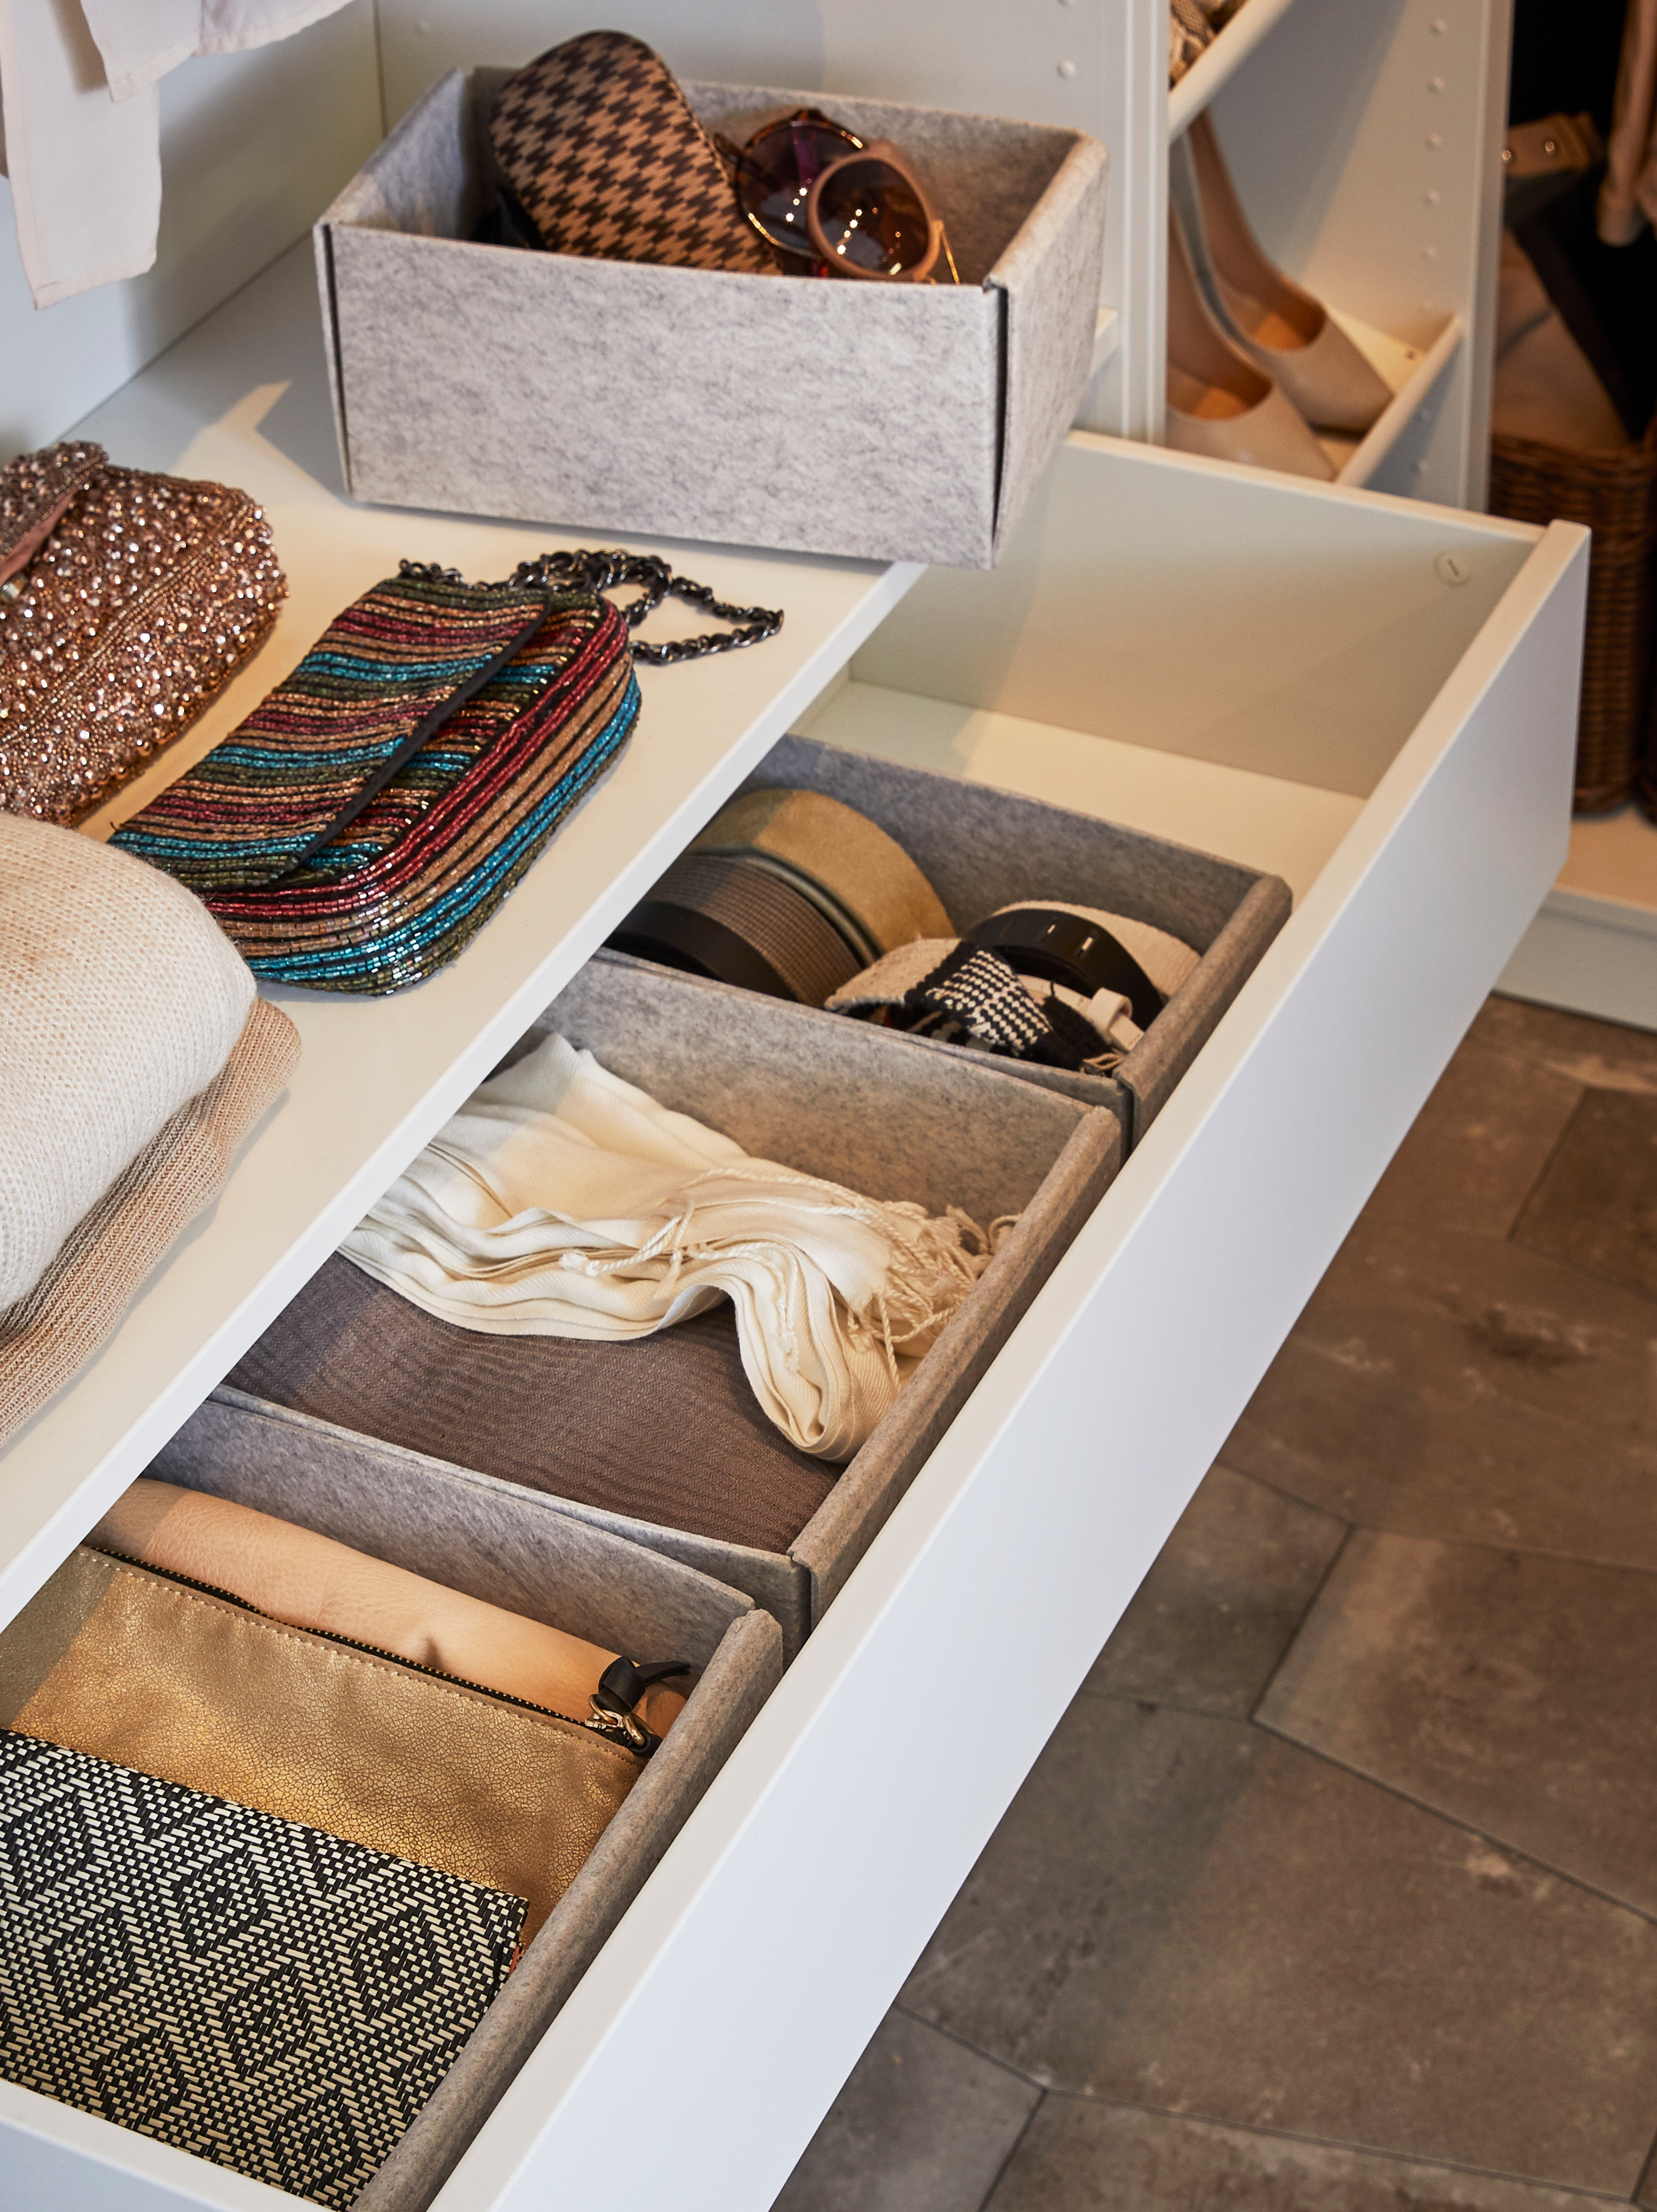 The bottom of a wardrobe interior has an open drawer with a row of light grey KOMPLEMENT boxes holding groups of accessories.